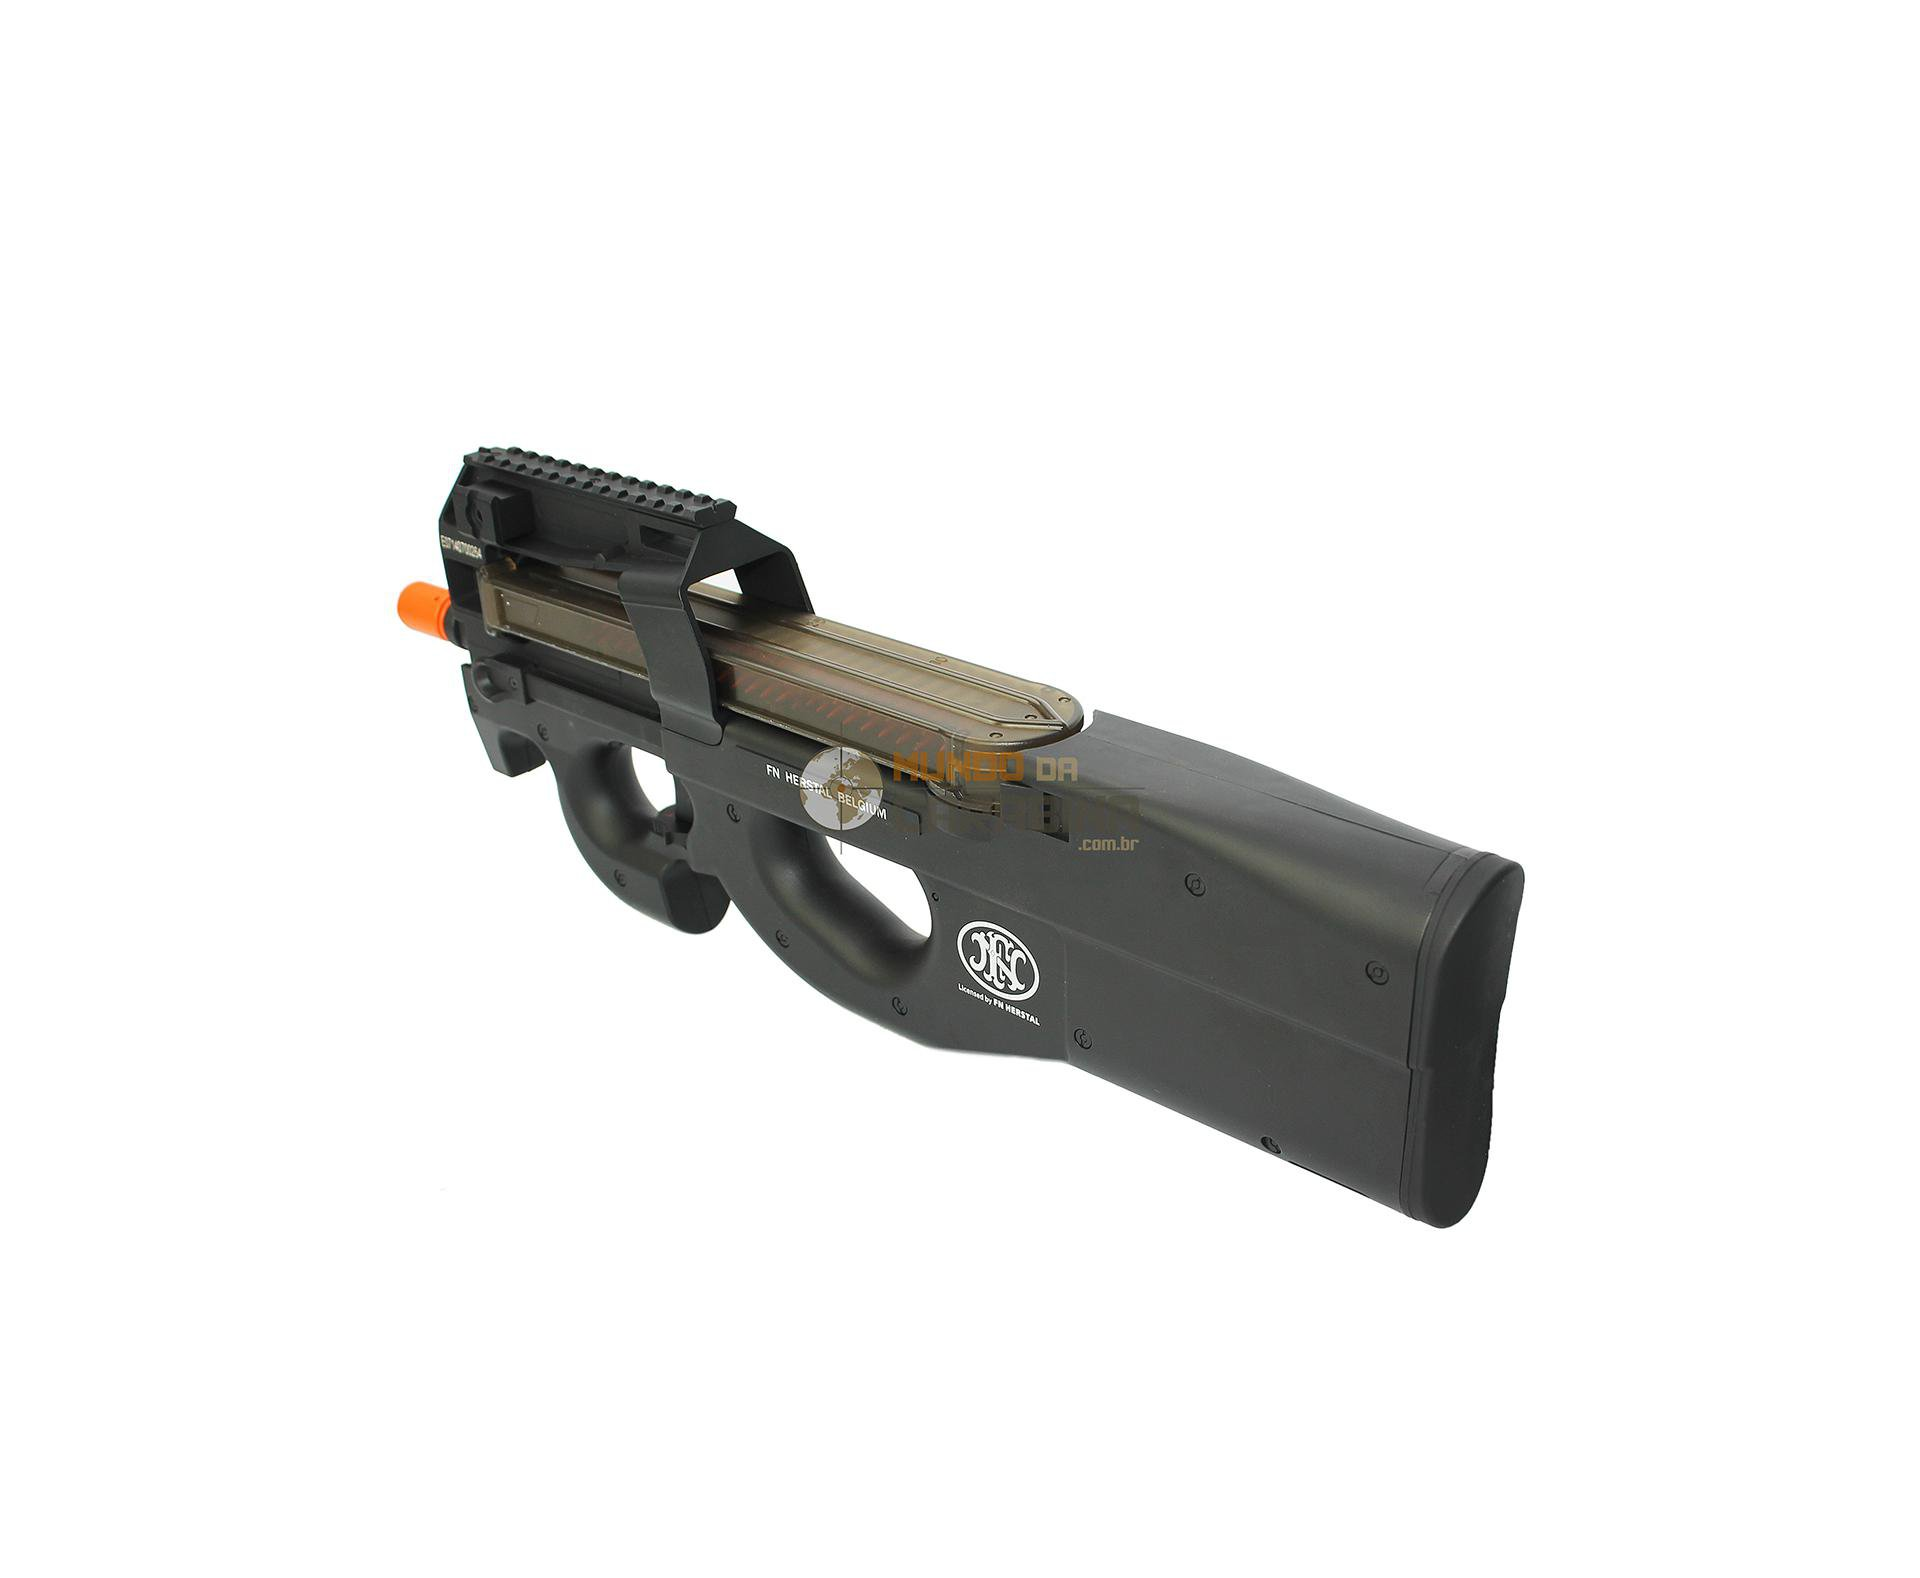 Rifle De Airsoft Fn P90 - Calibre 6,0 Mm - Bivolt -fn Herstal - Bivolt